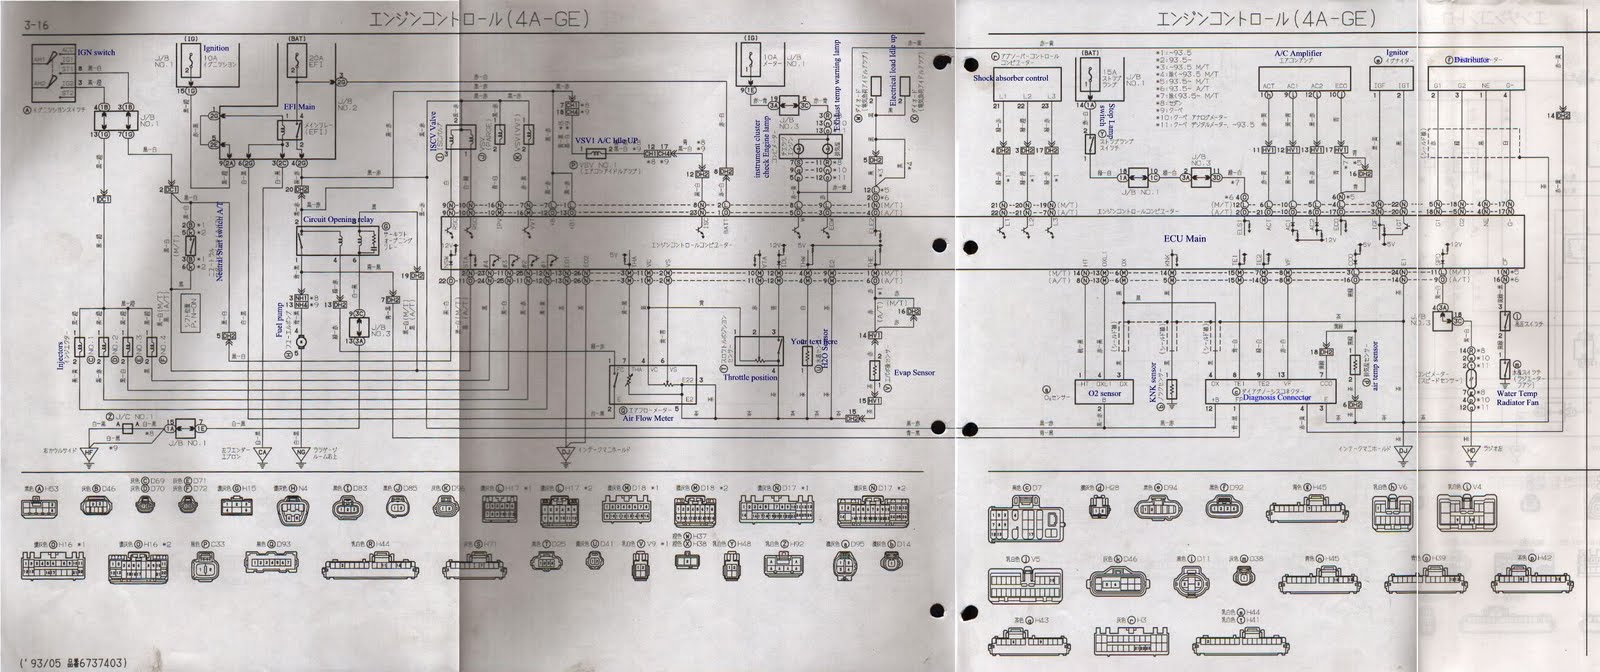 recently i found a wiring diagram for the 4age 20v silvertop from the internet it [ 1600 x 672 Pixel ]